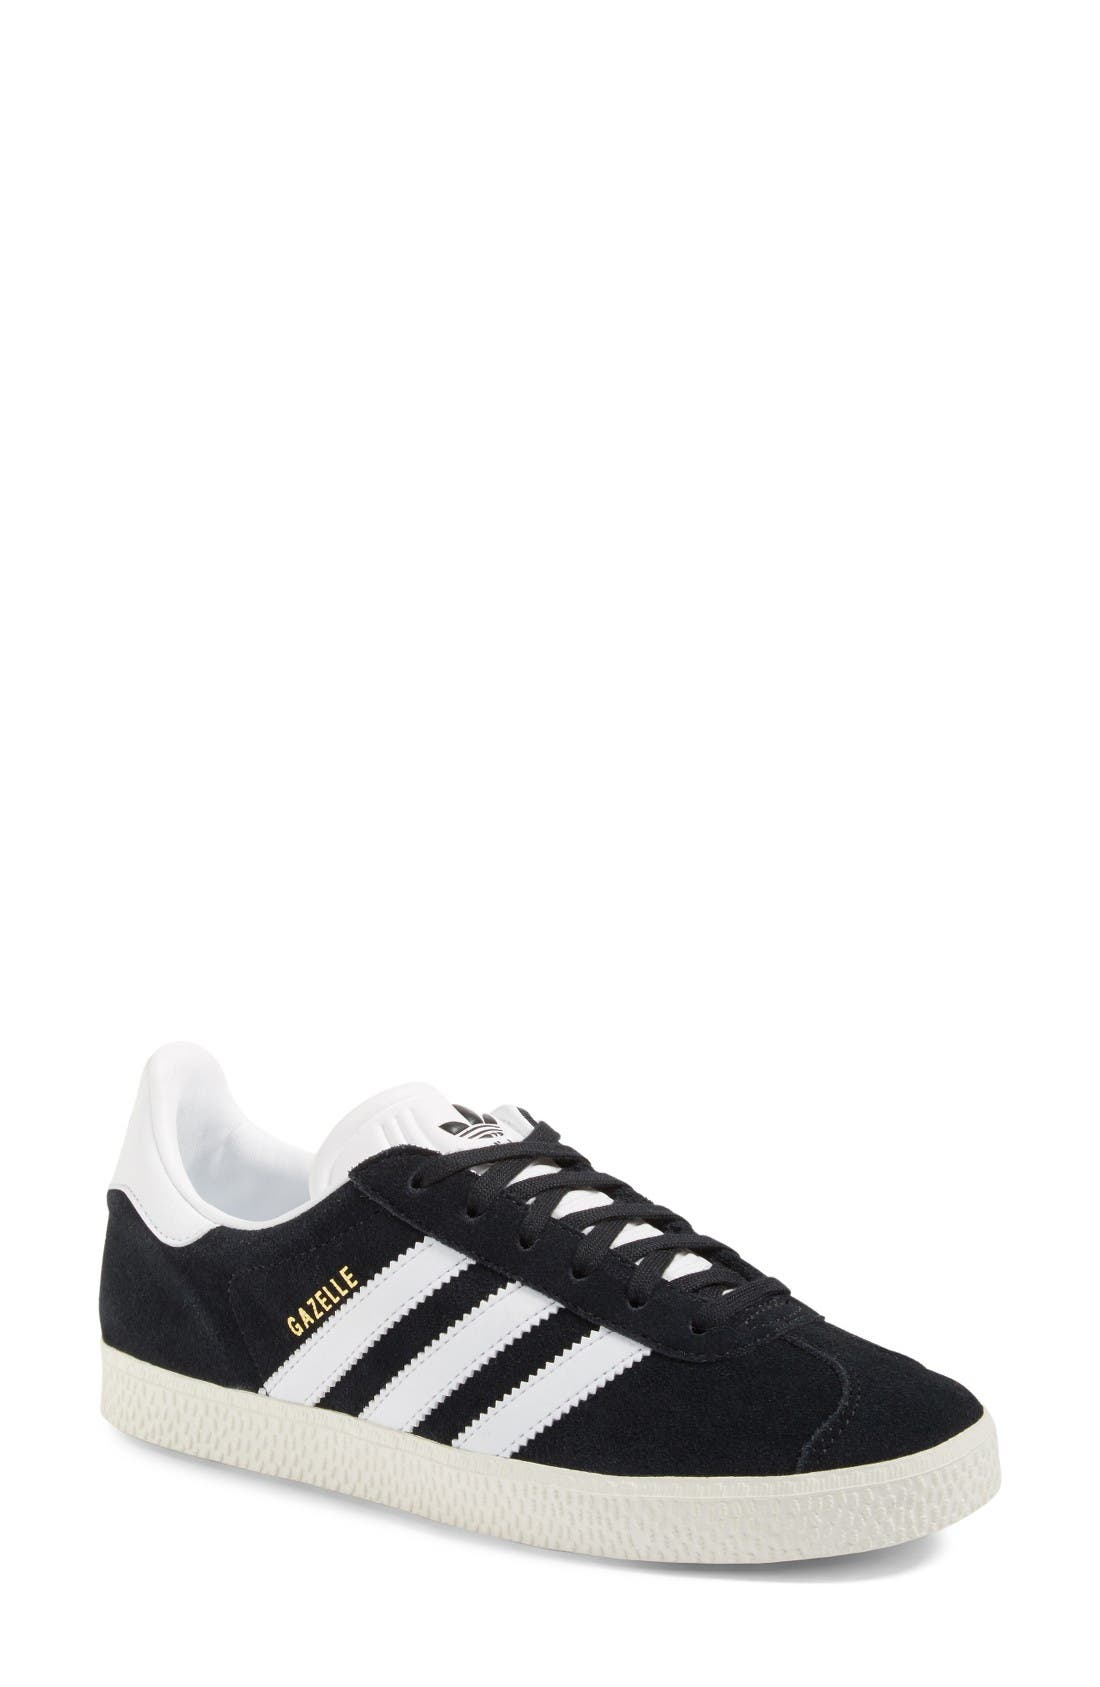 women's adidas gazelle casual shoes